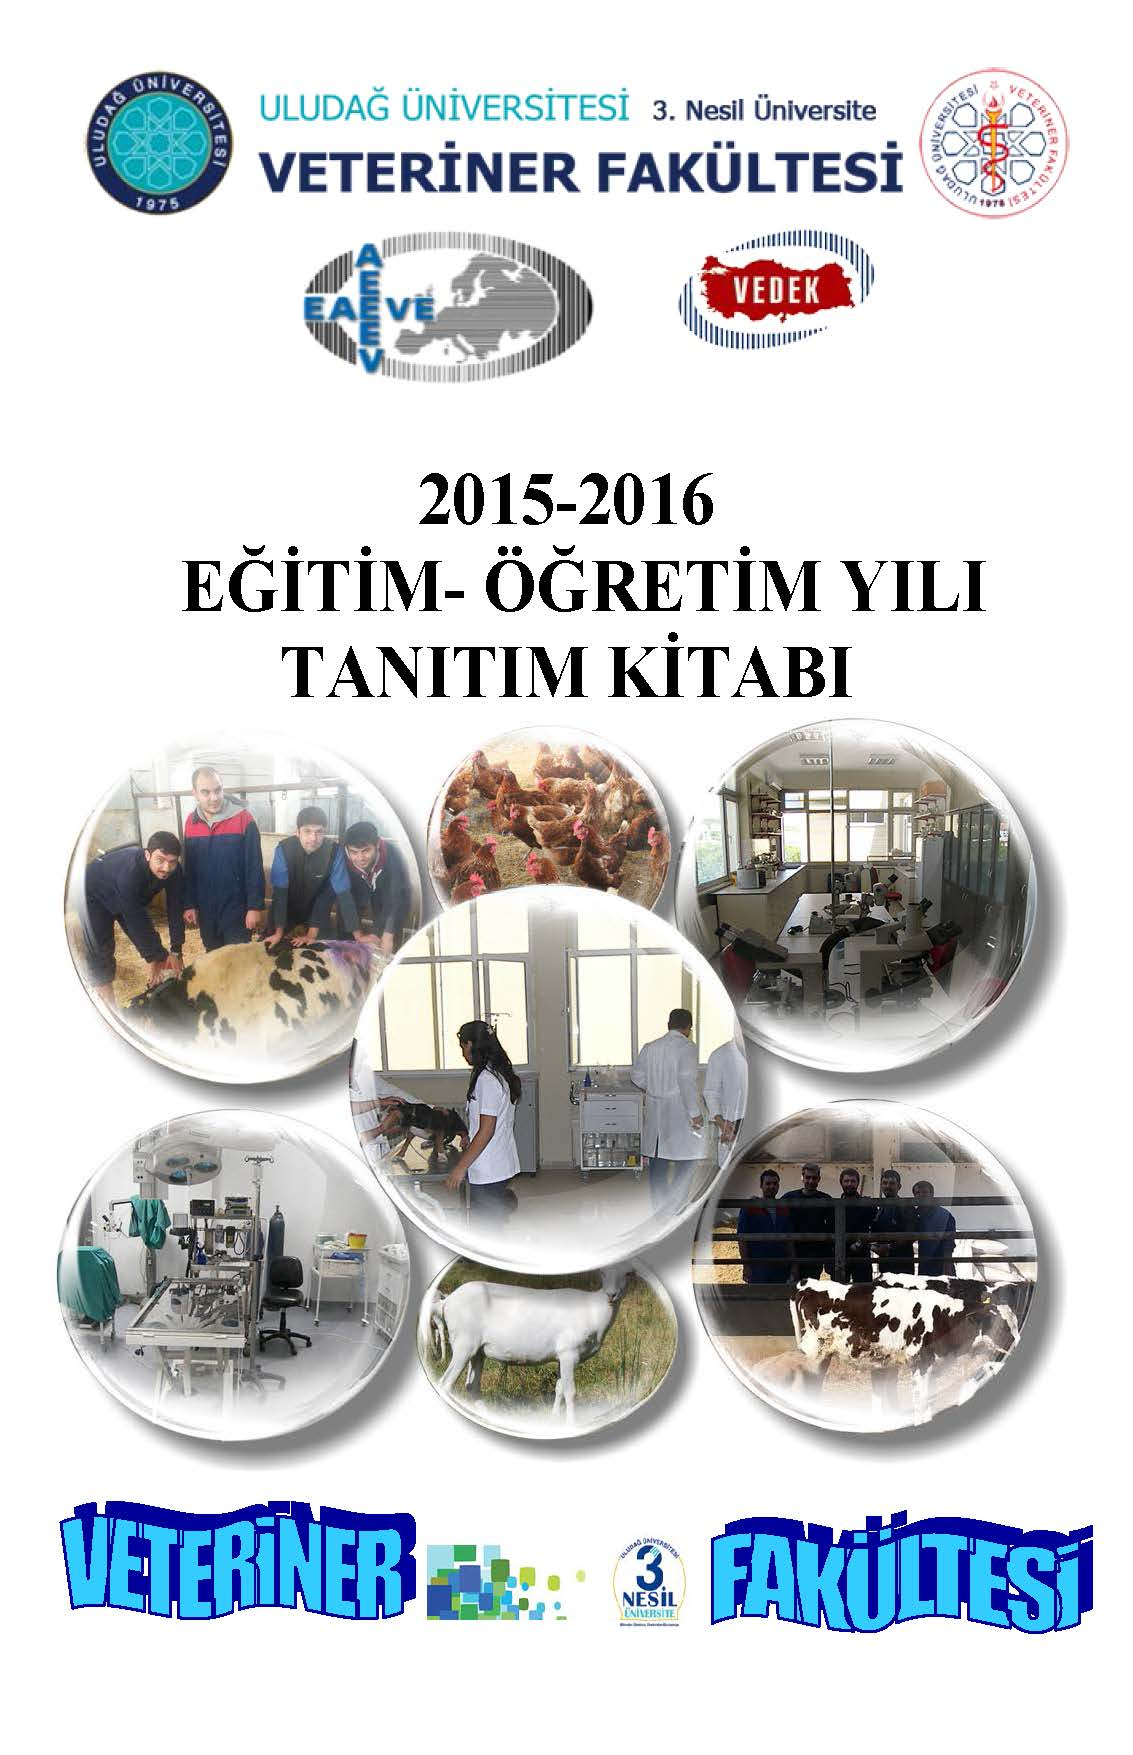 http://veteriner.uludag.edu.tr/documents/tanitim-kitabi/2015-2016.jpg